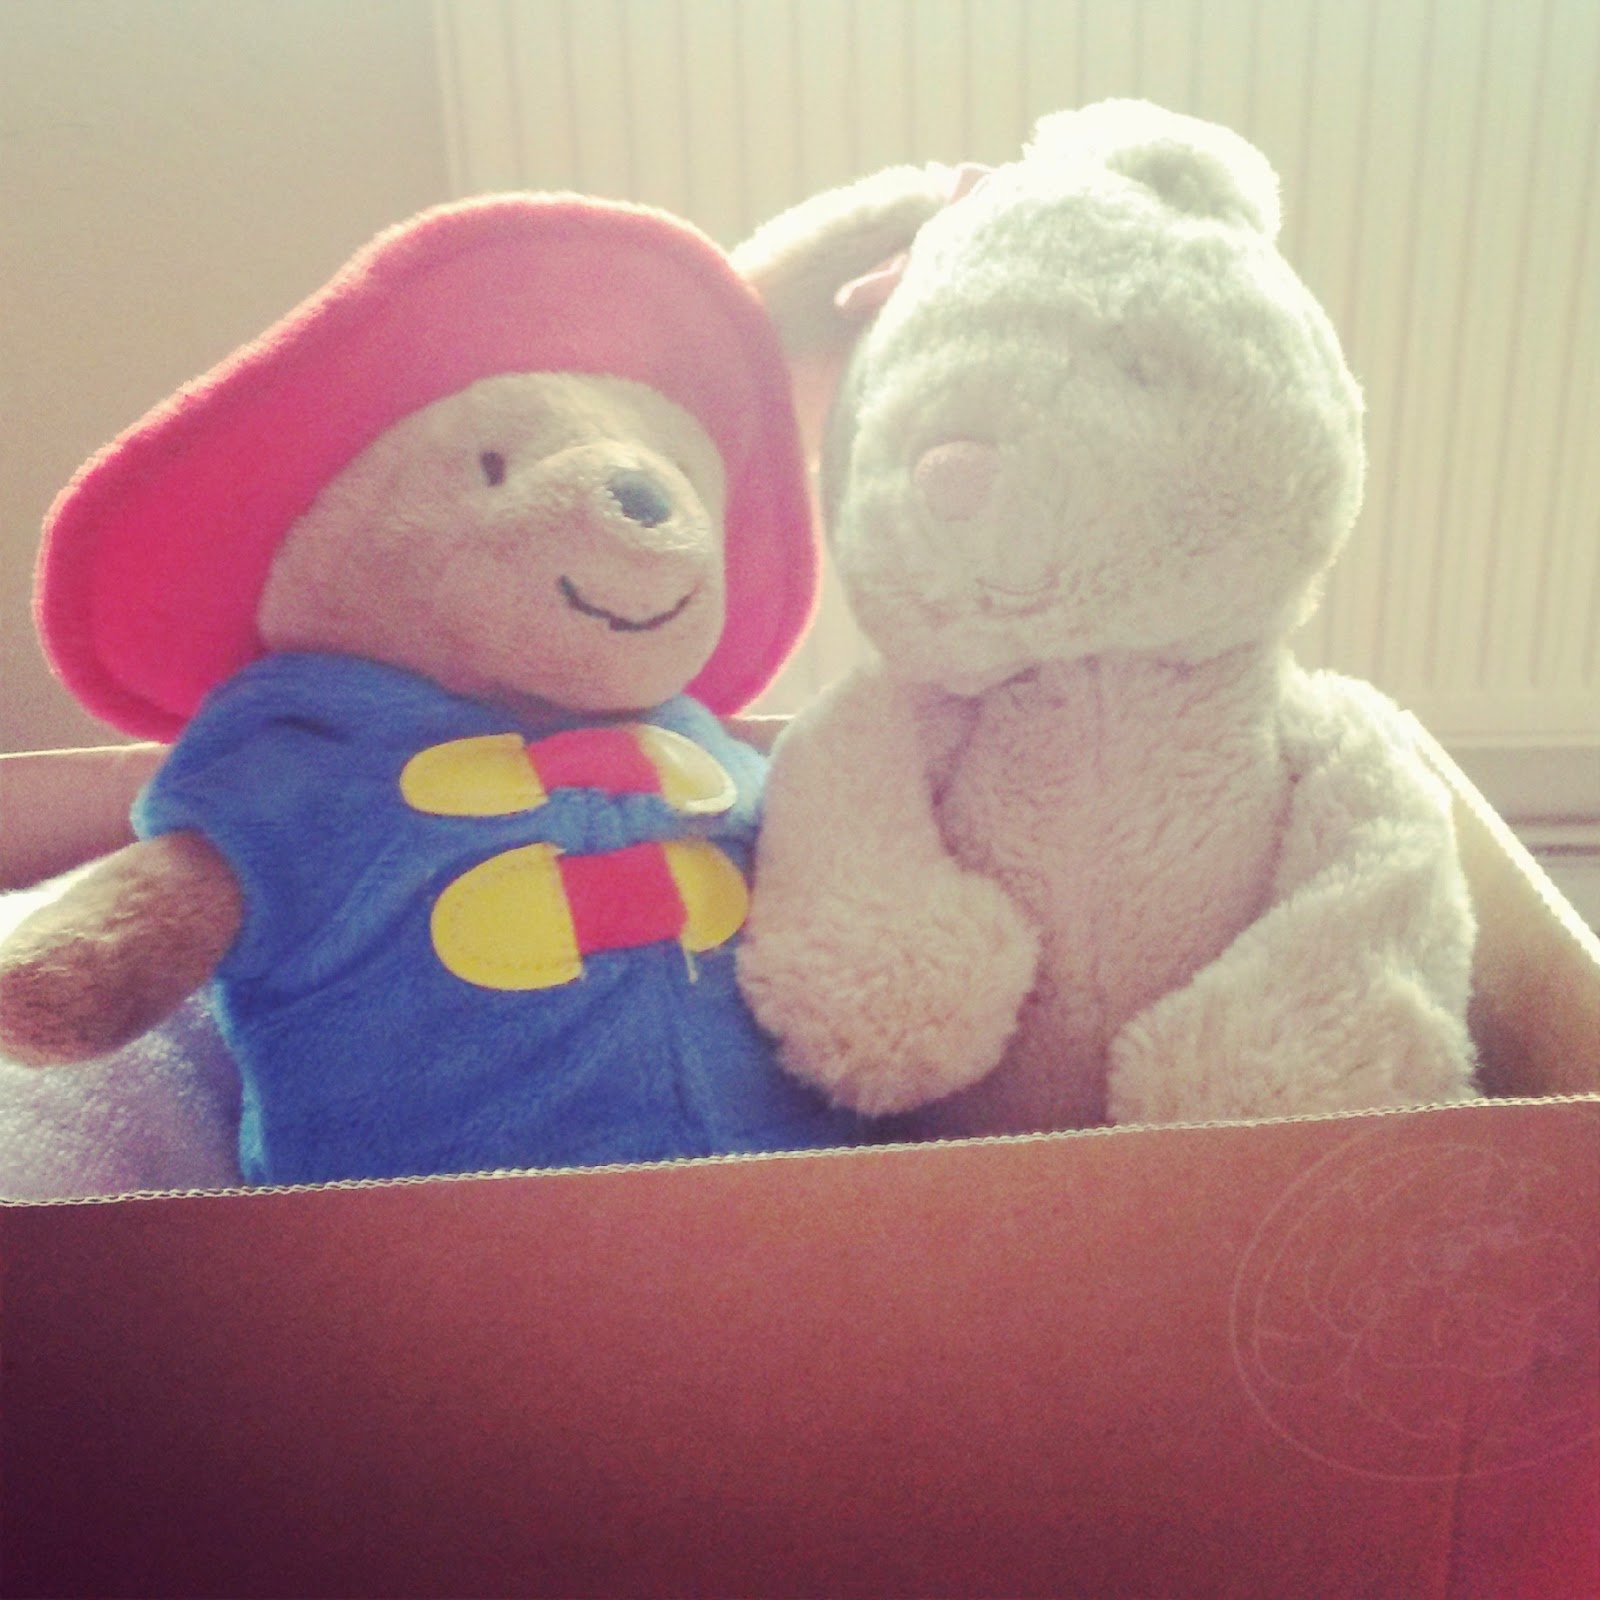 Paddington and cuddly rabbit